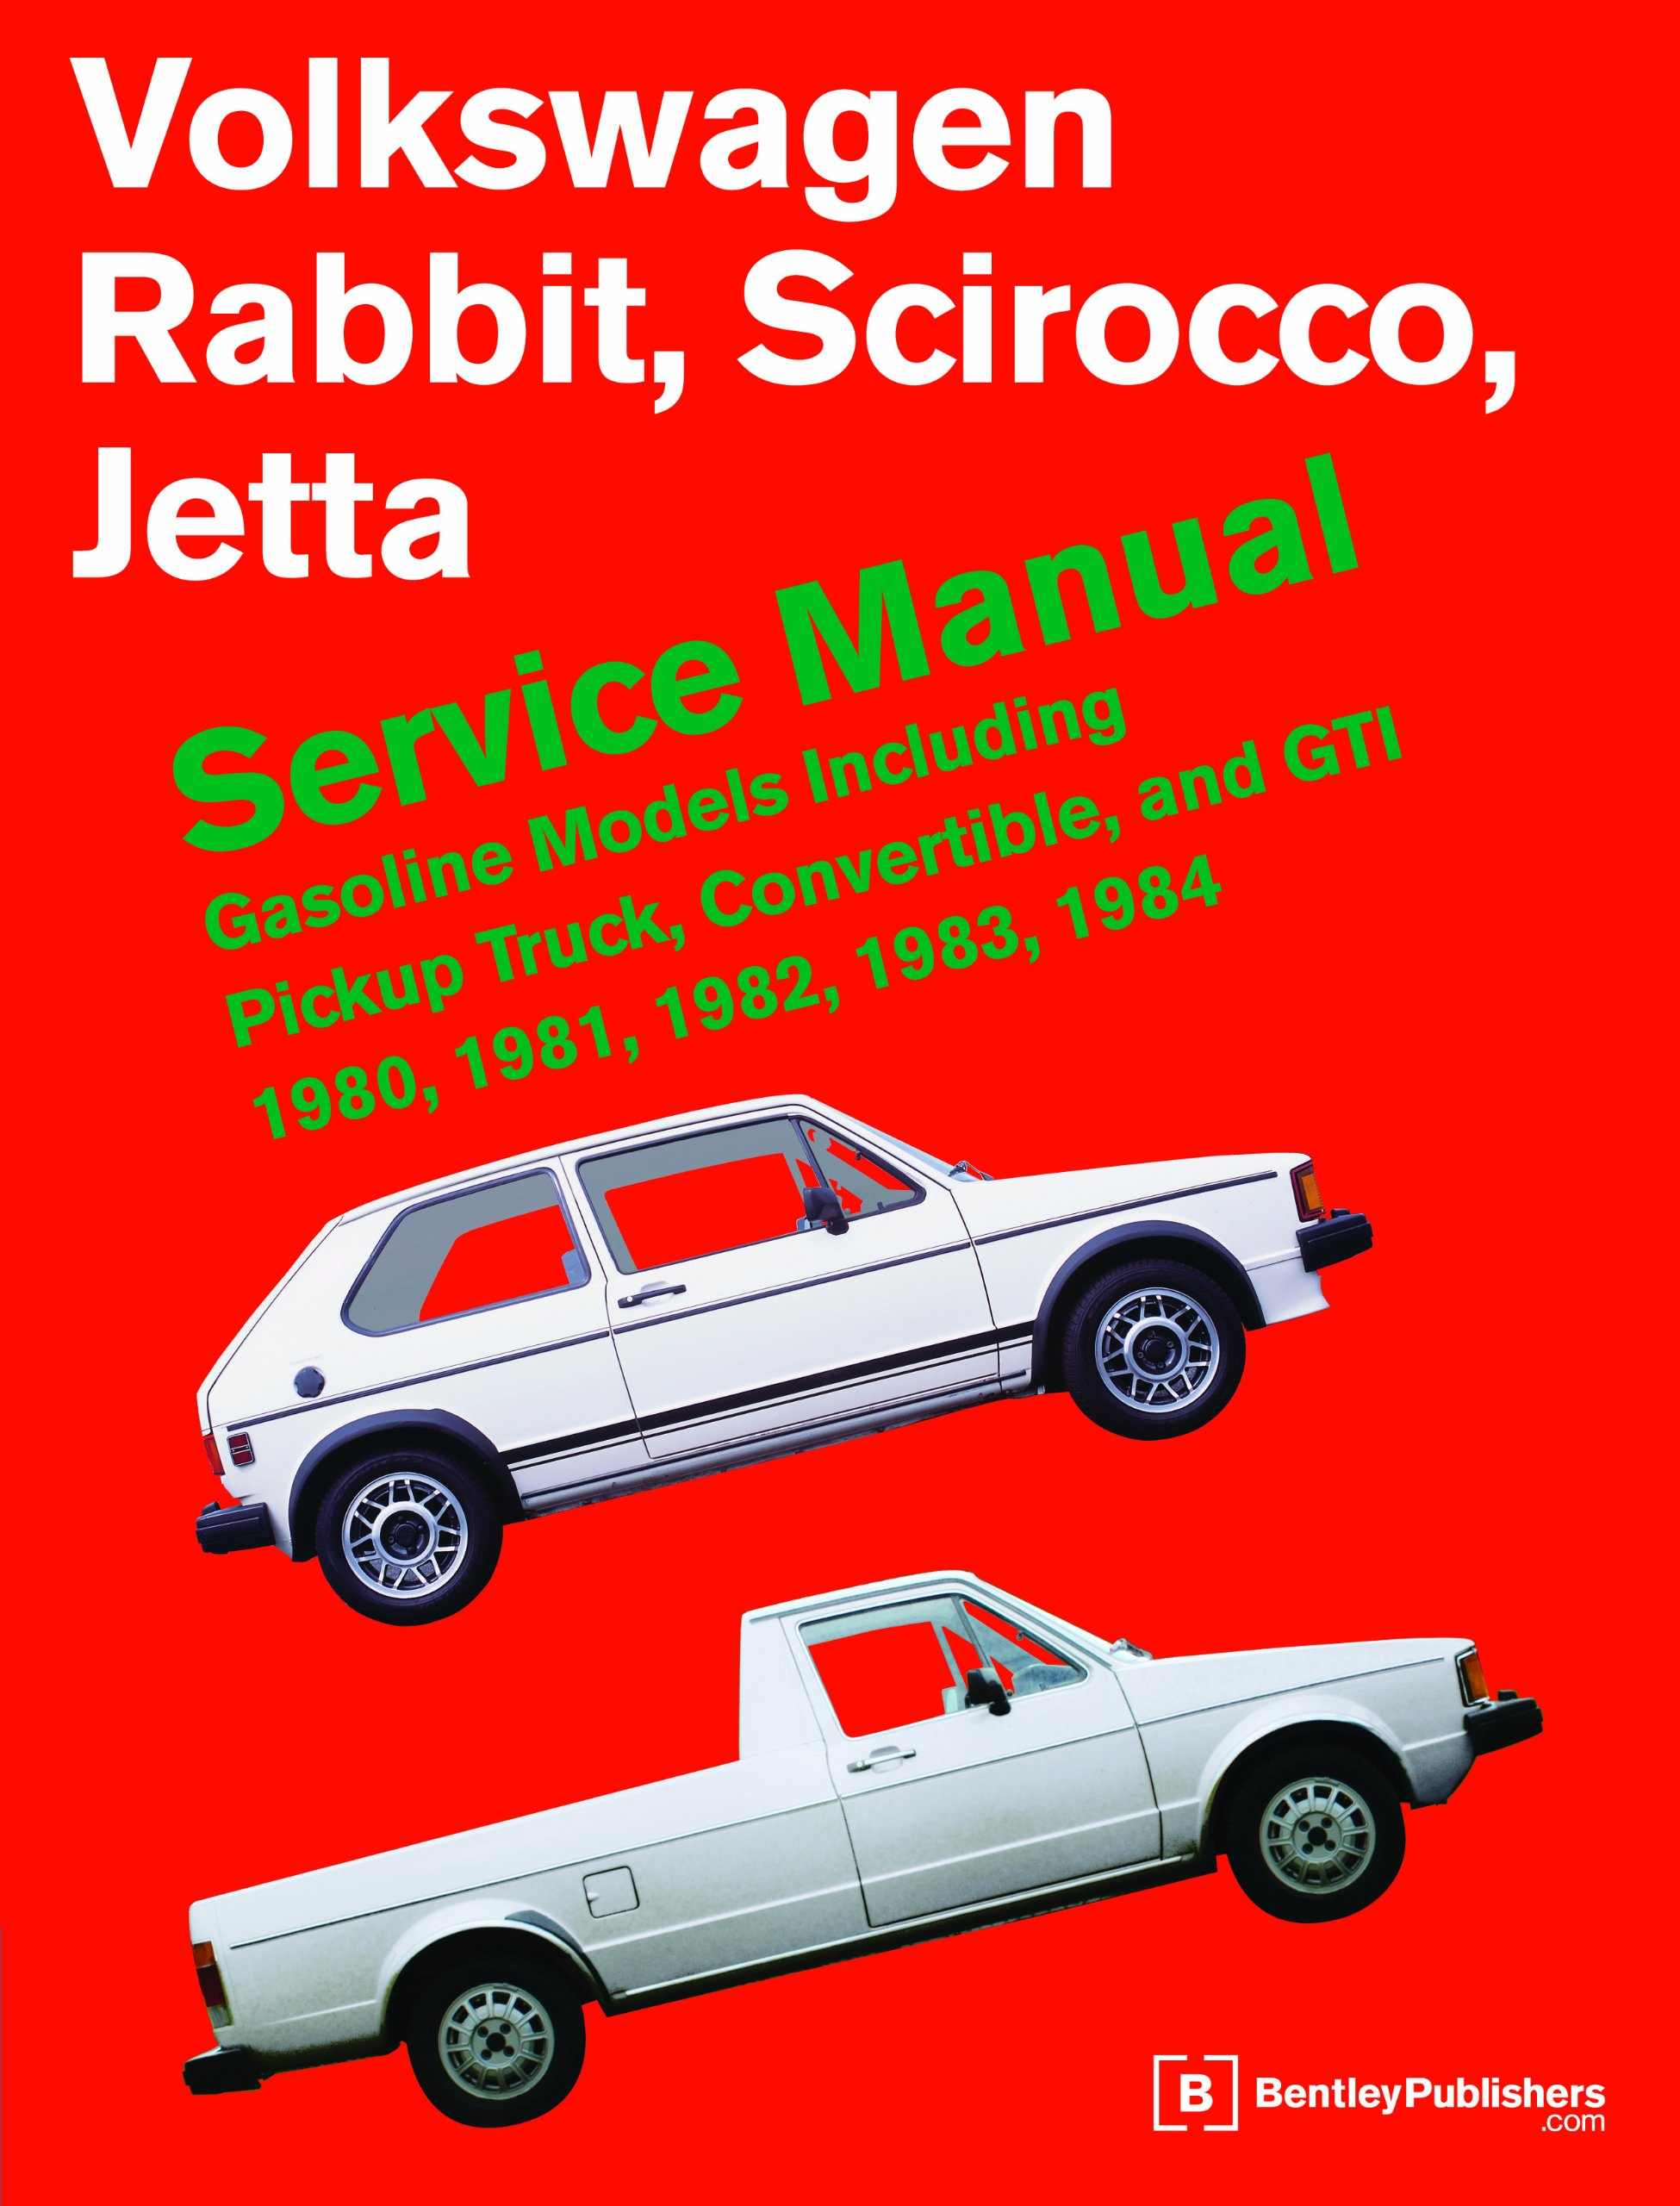 Volkswagen Rabbit, Scirocco, Jetta Service Manual: 1980-1984: Bentley  Publishers: 9780837617046: Amazon.com: BooksAmazon.com